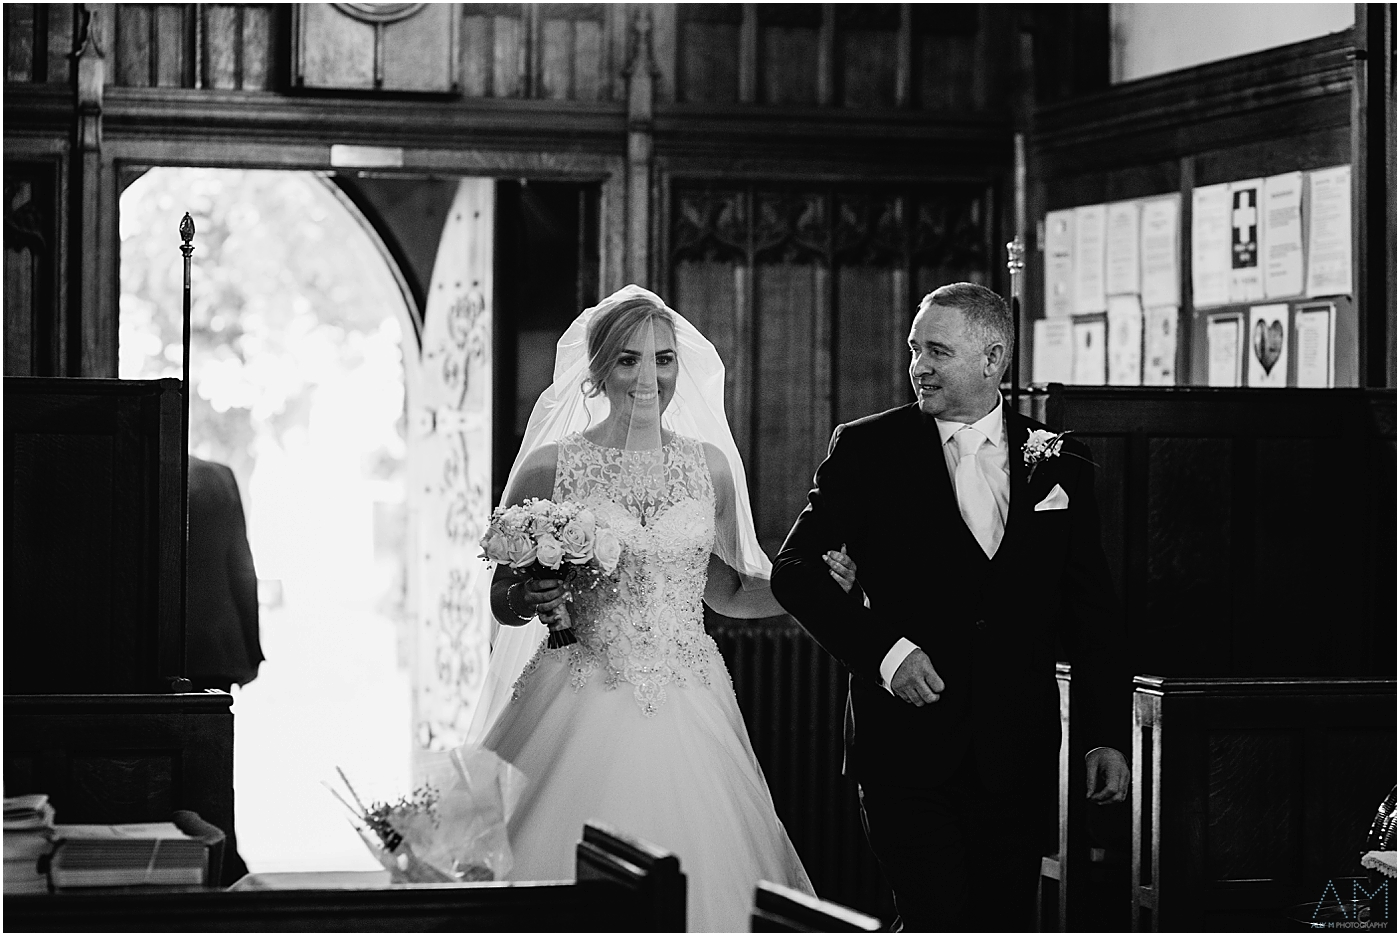 Proud Dad walking his girl down the aisle